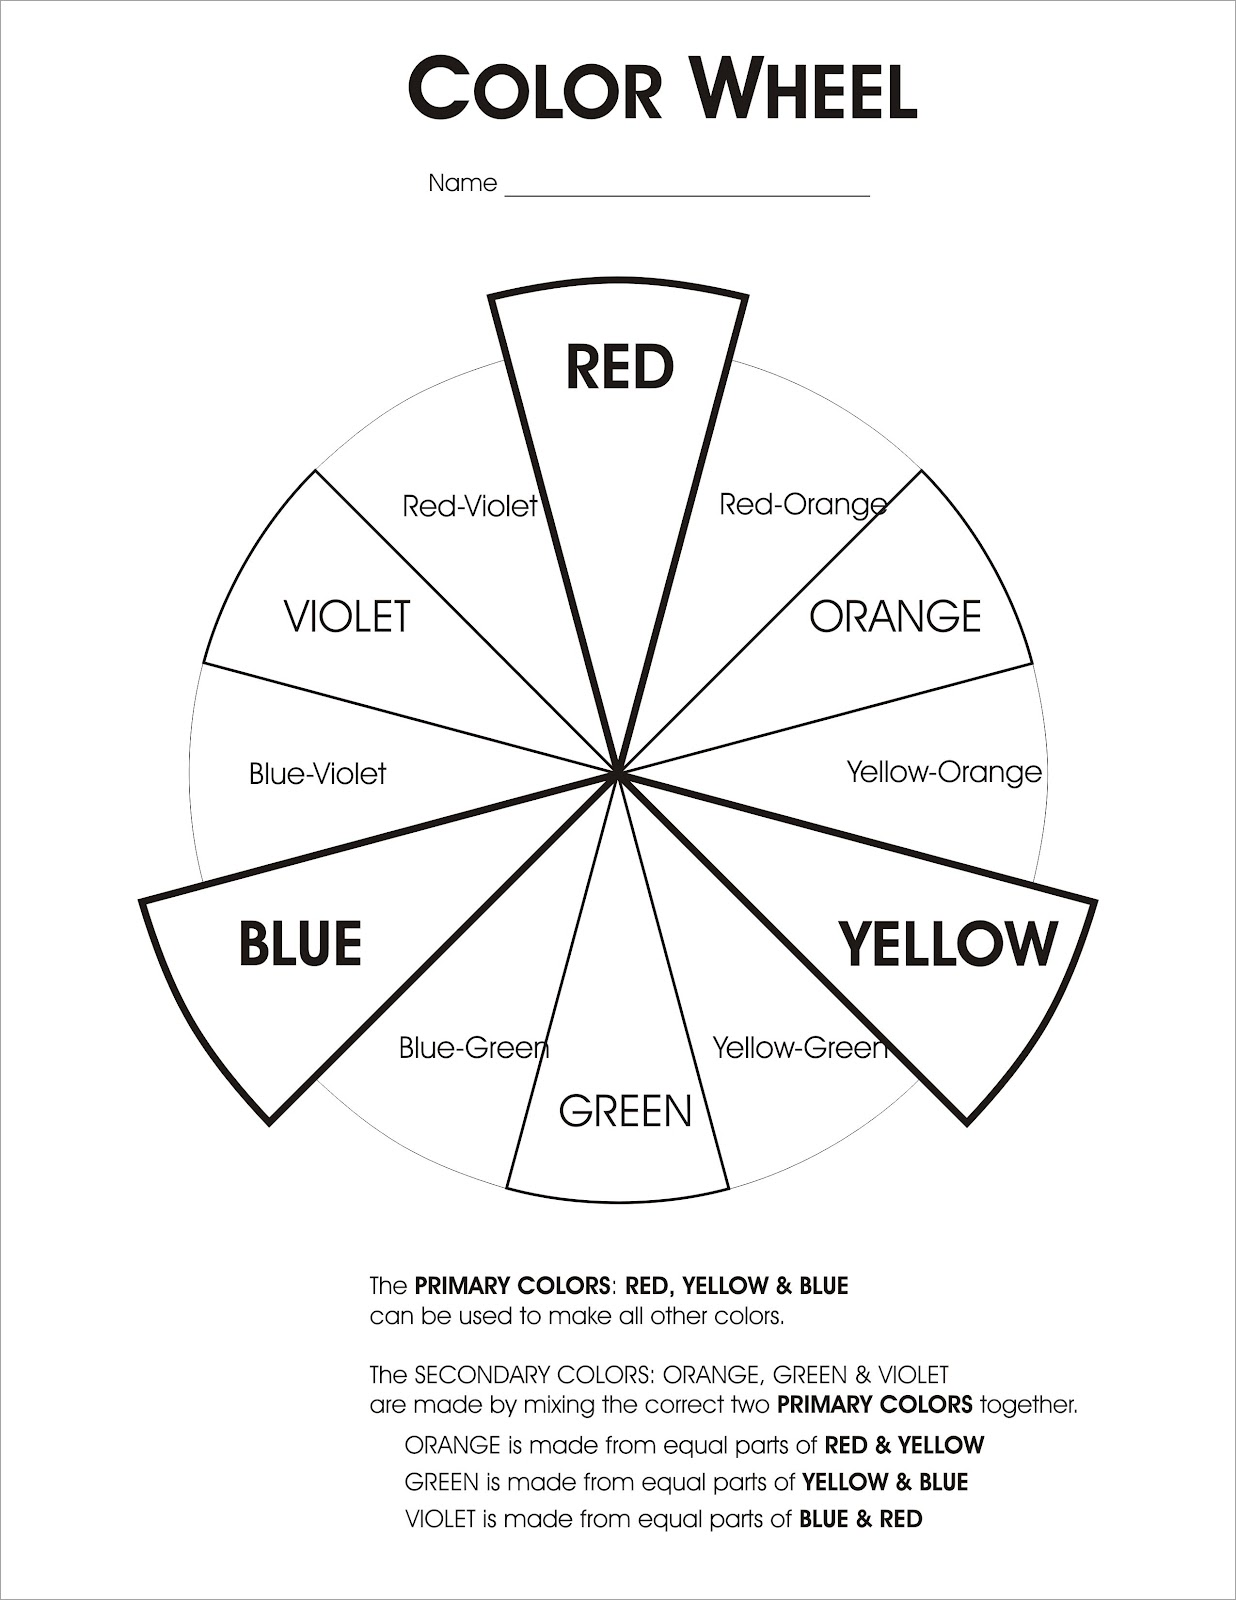 color wheel Worksheets, Coloring Pages, and other Random